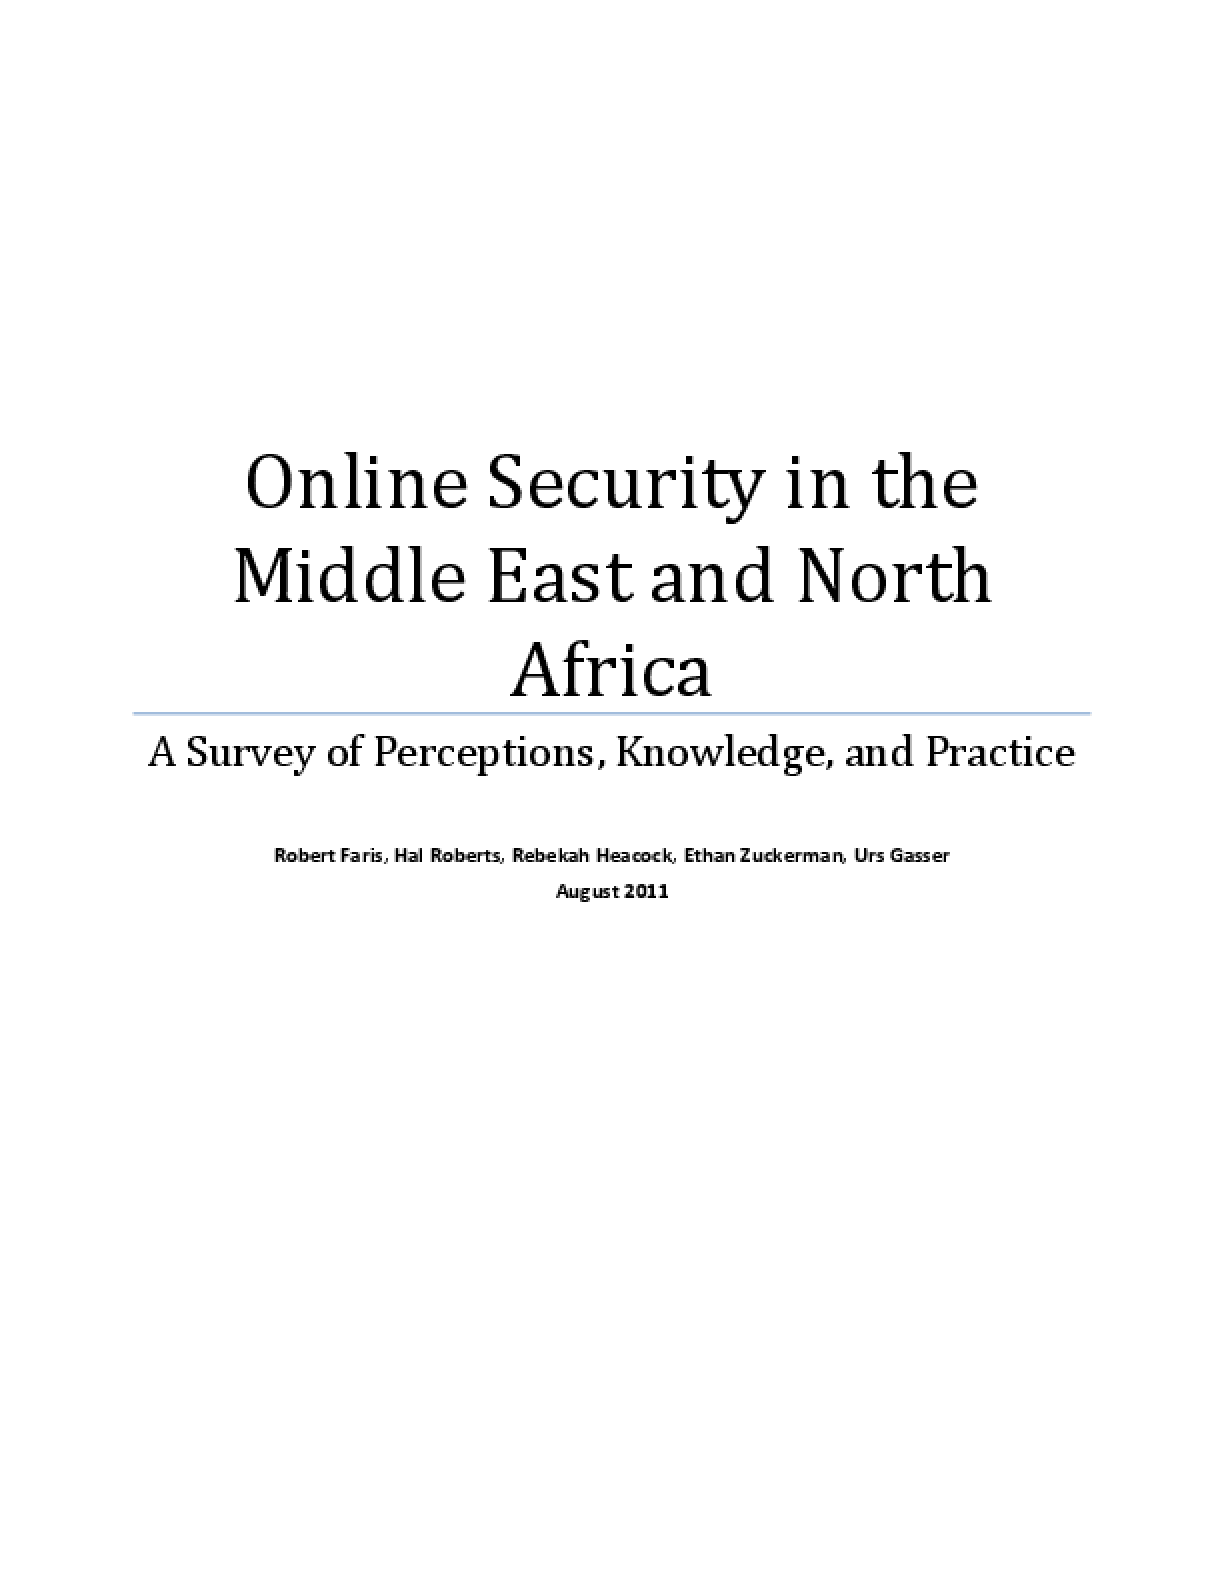 Online Security in the Middle East and North Africa: A Survey of Perceptions, Knowledge, and Practice